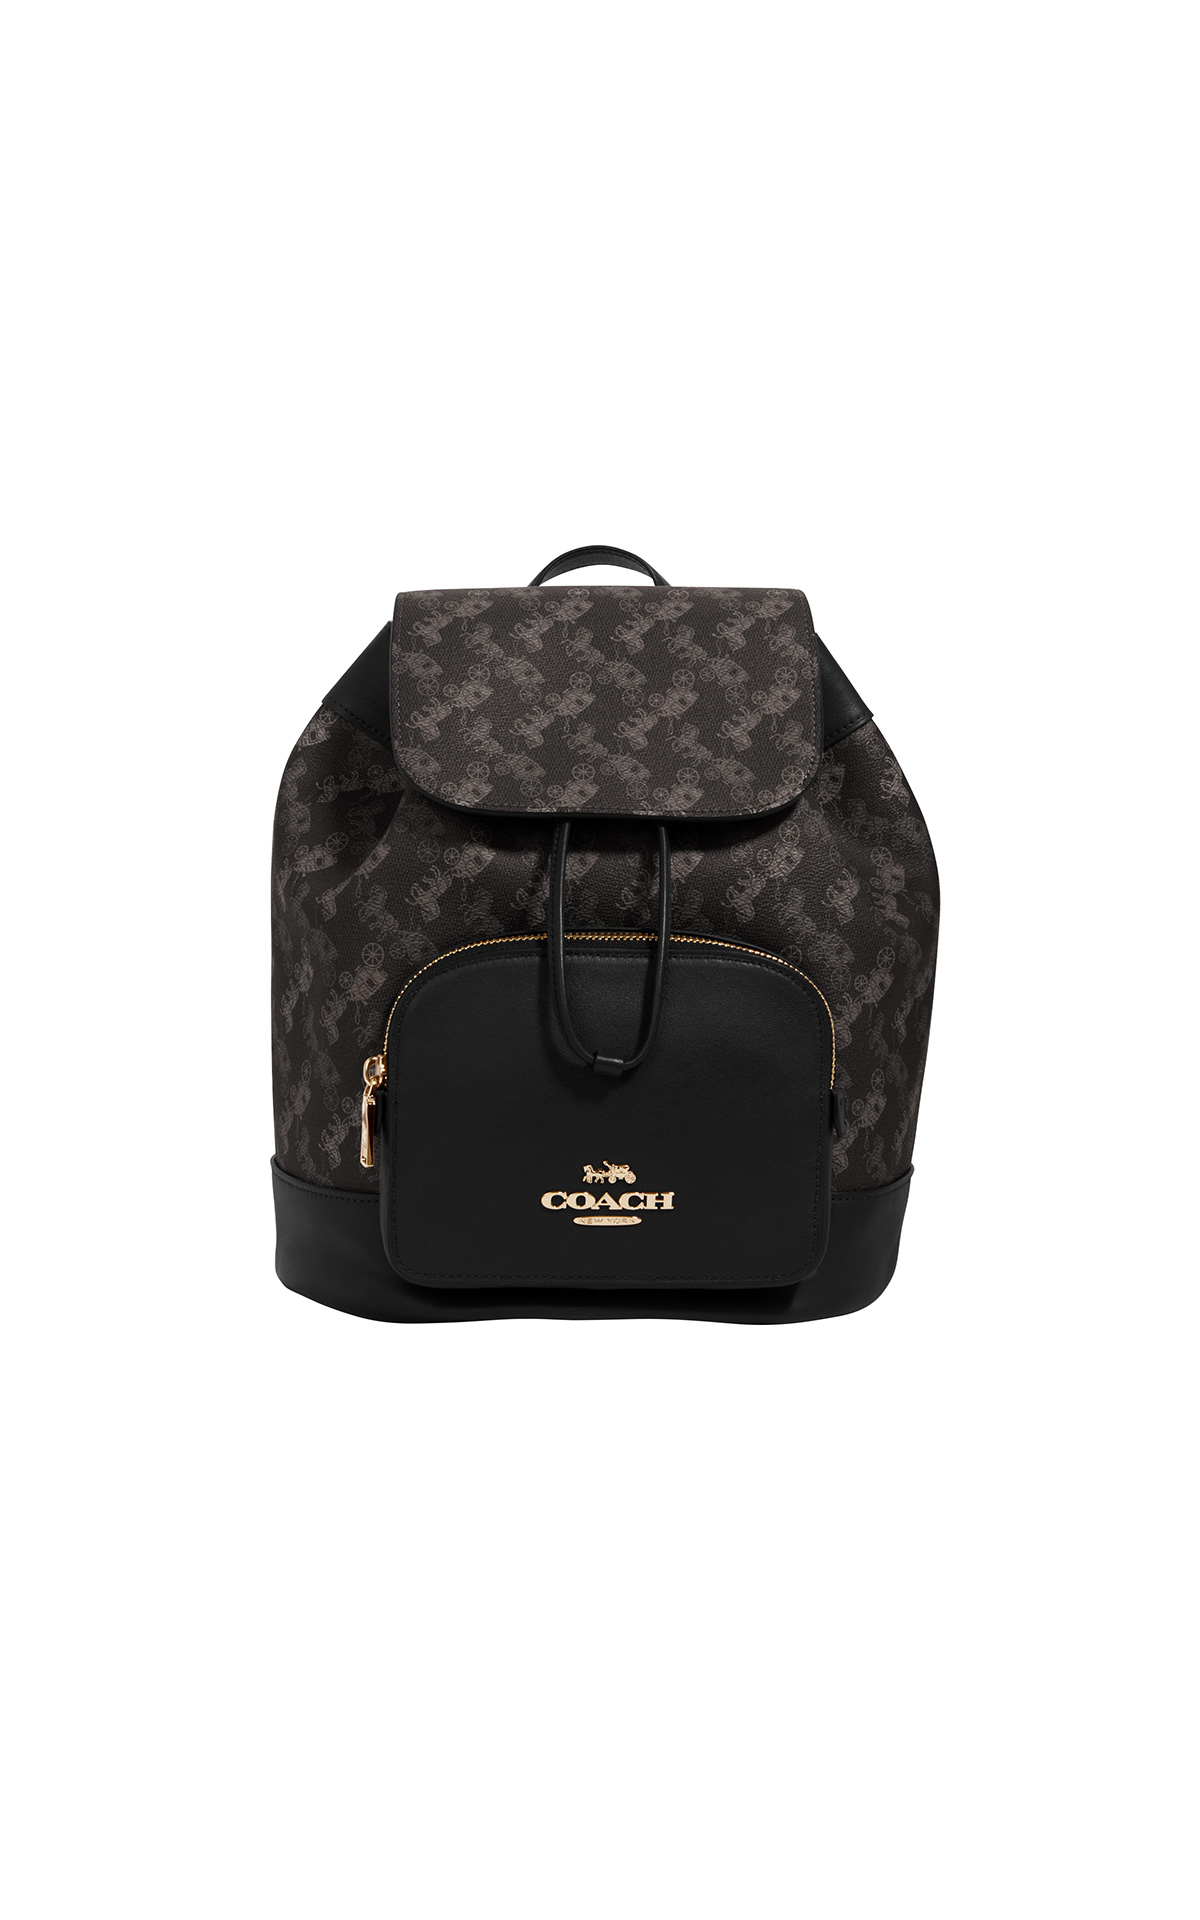 Coach Horse and Carriage Jes backpack in grey multi at The Bicester Village Shopping Collection